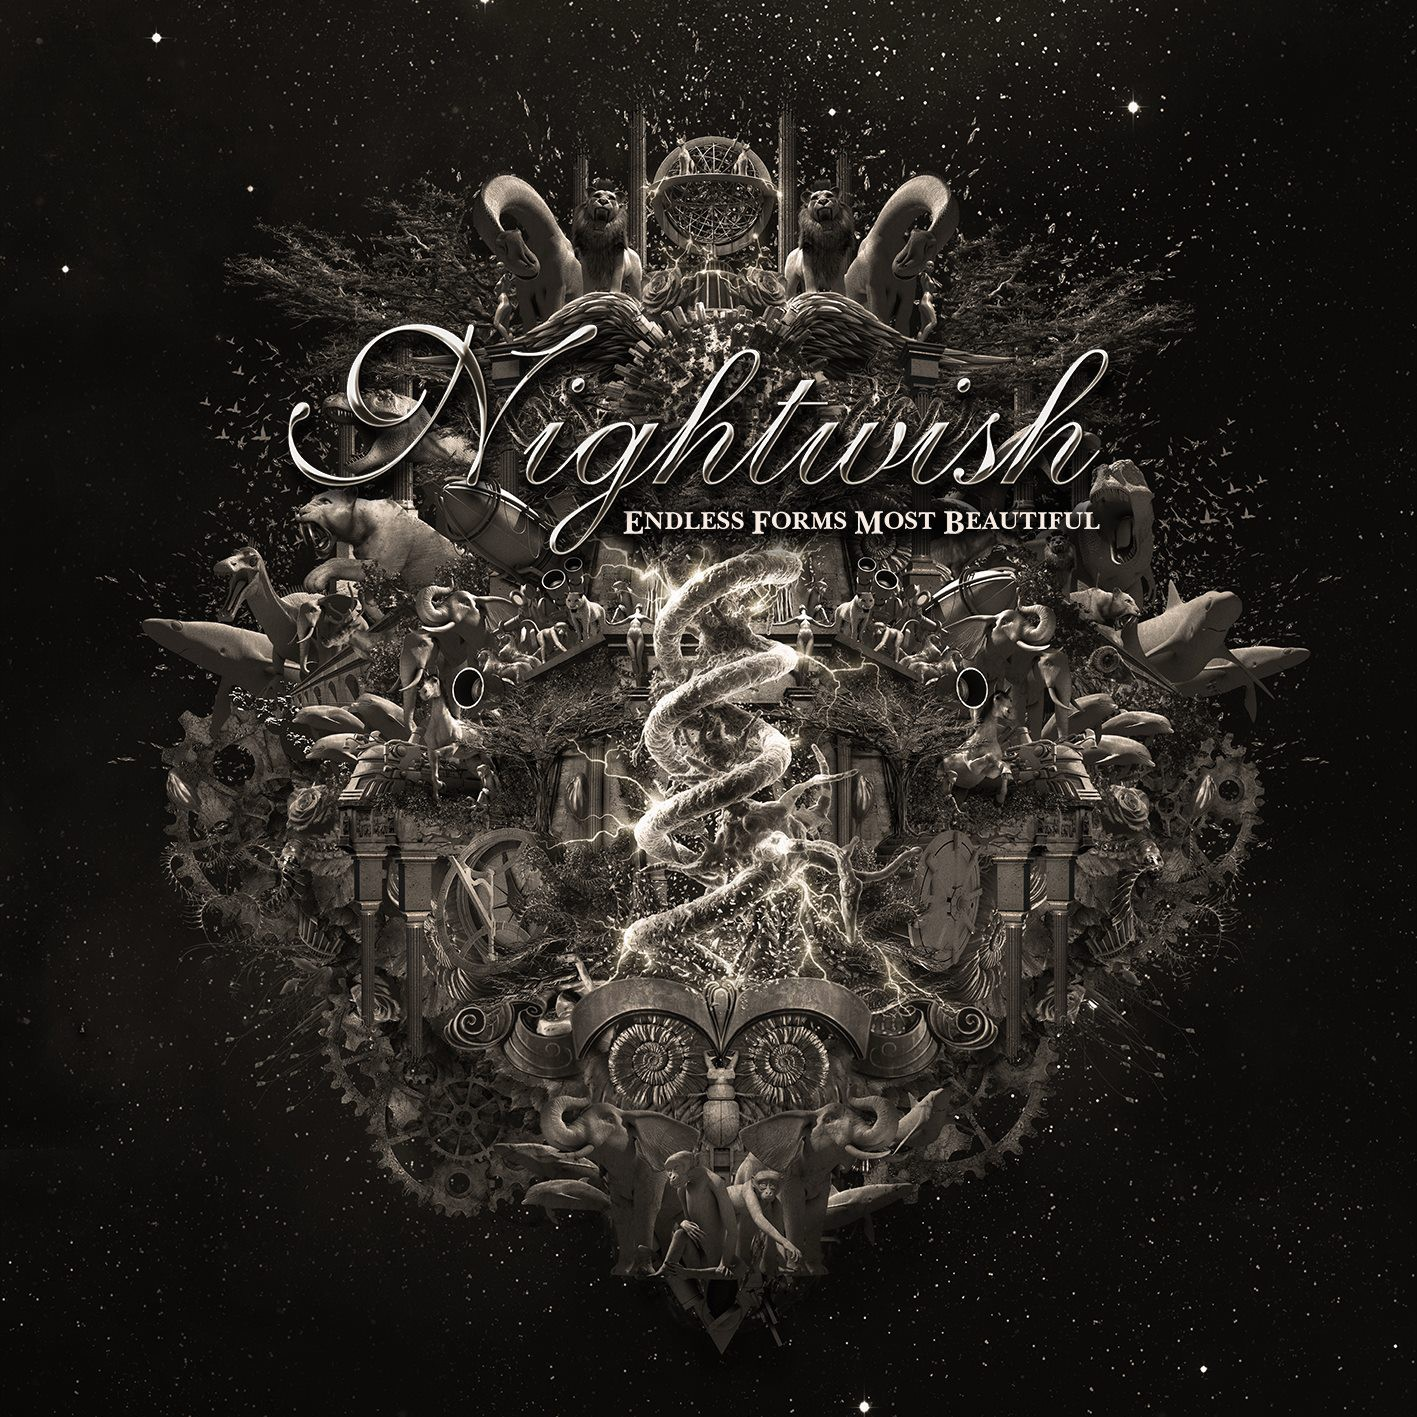 Вышел новый альбом Nightwish - Endless Forms Most Beautiful